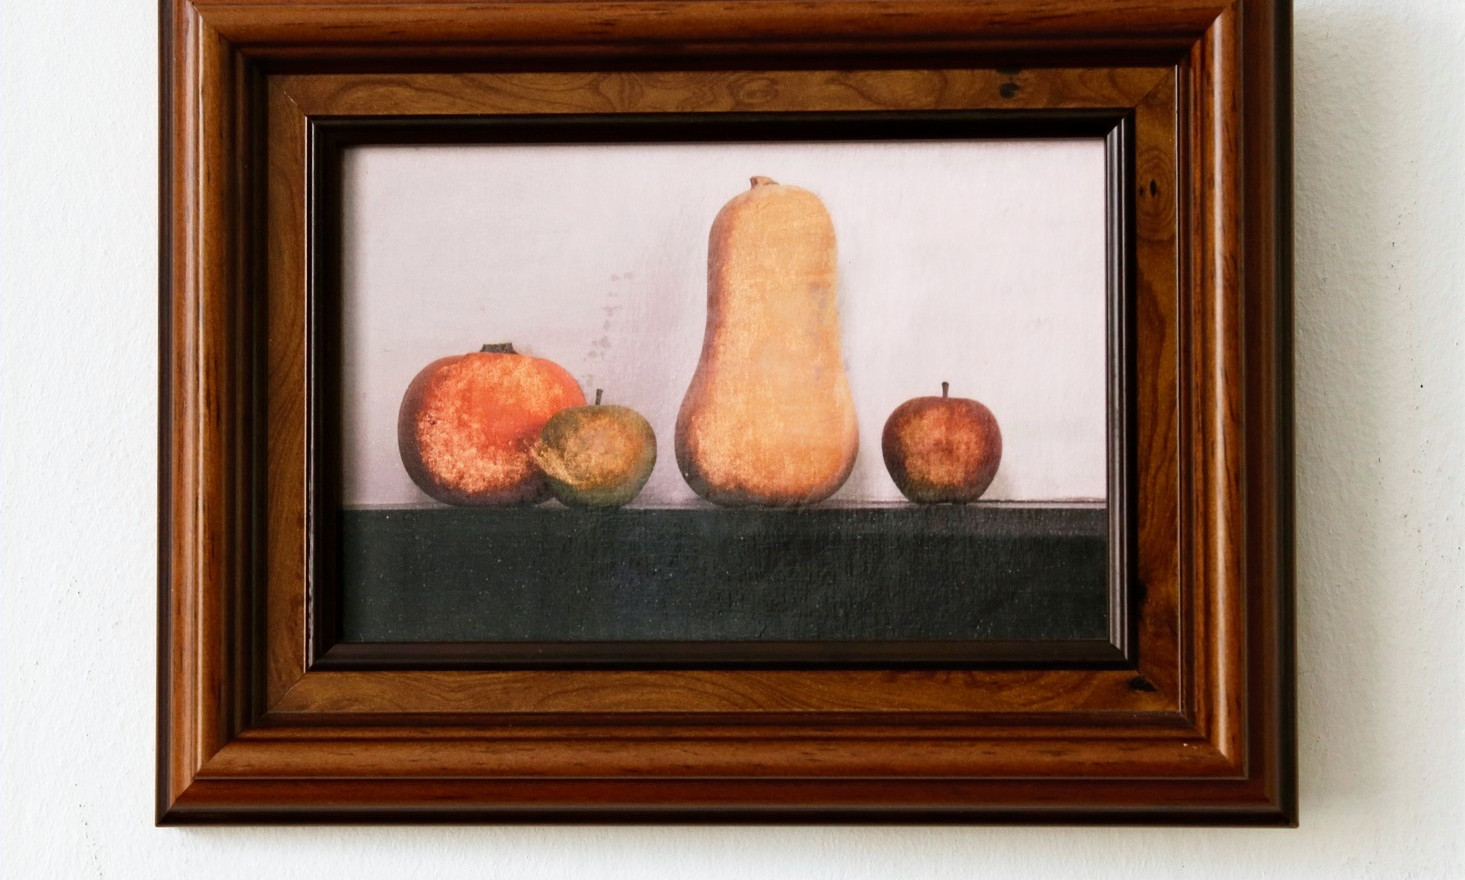 A Pumpkin, 2 Apples and a Squash in wooden frame